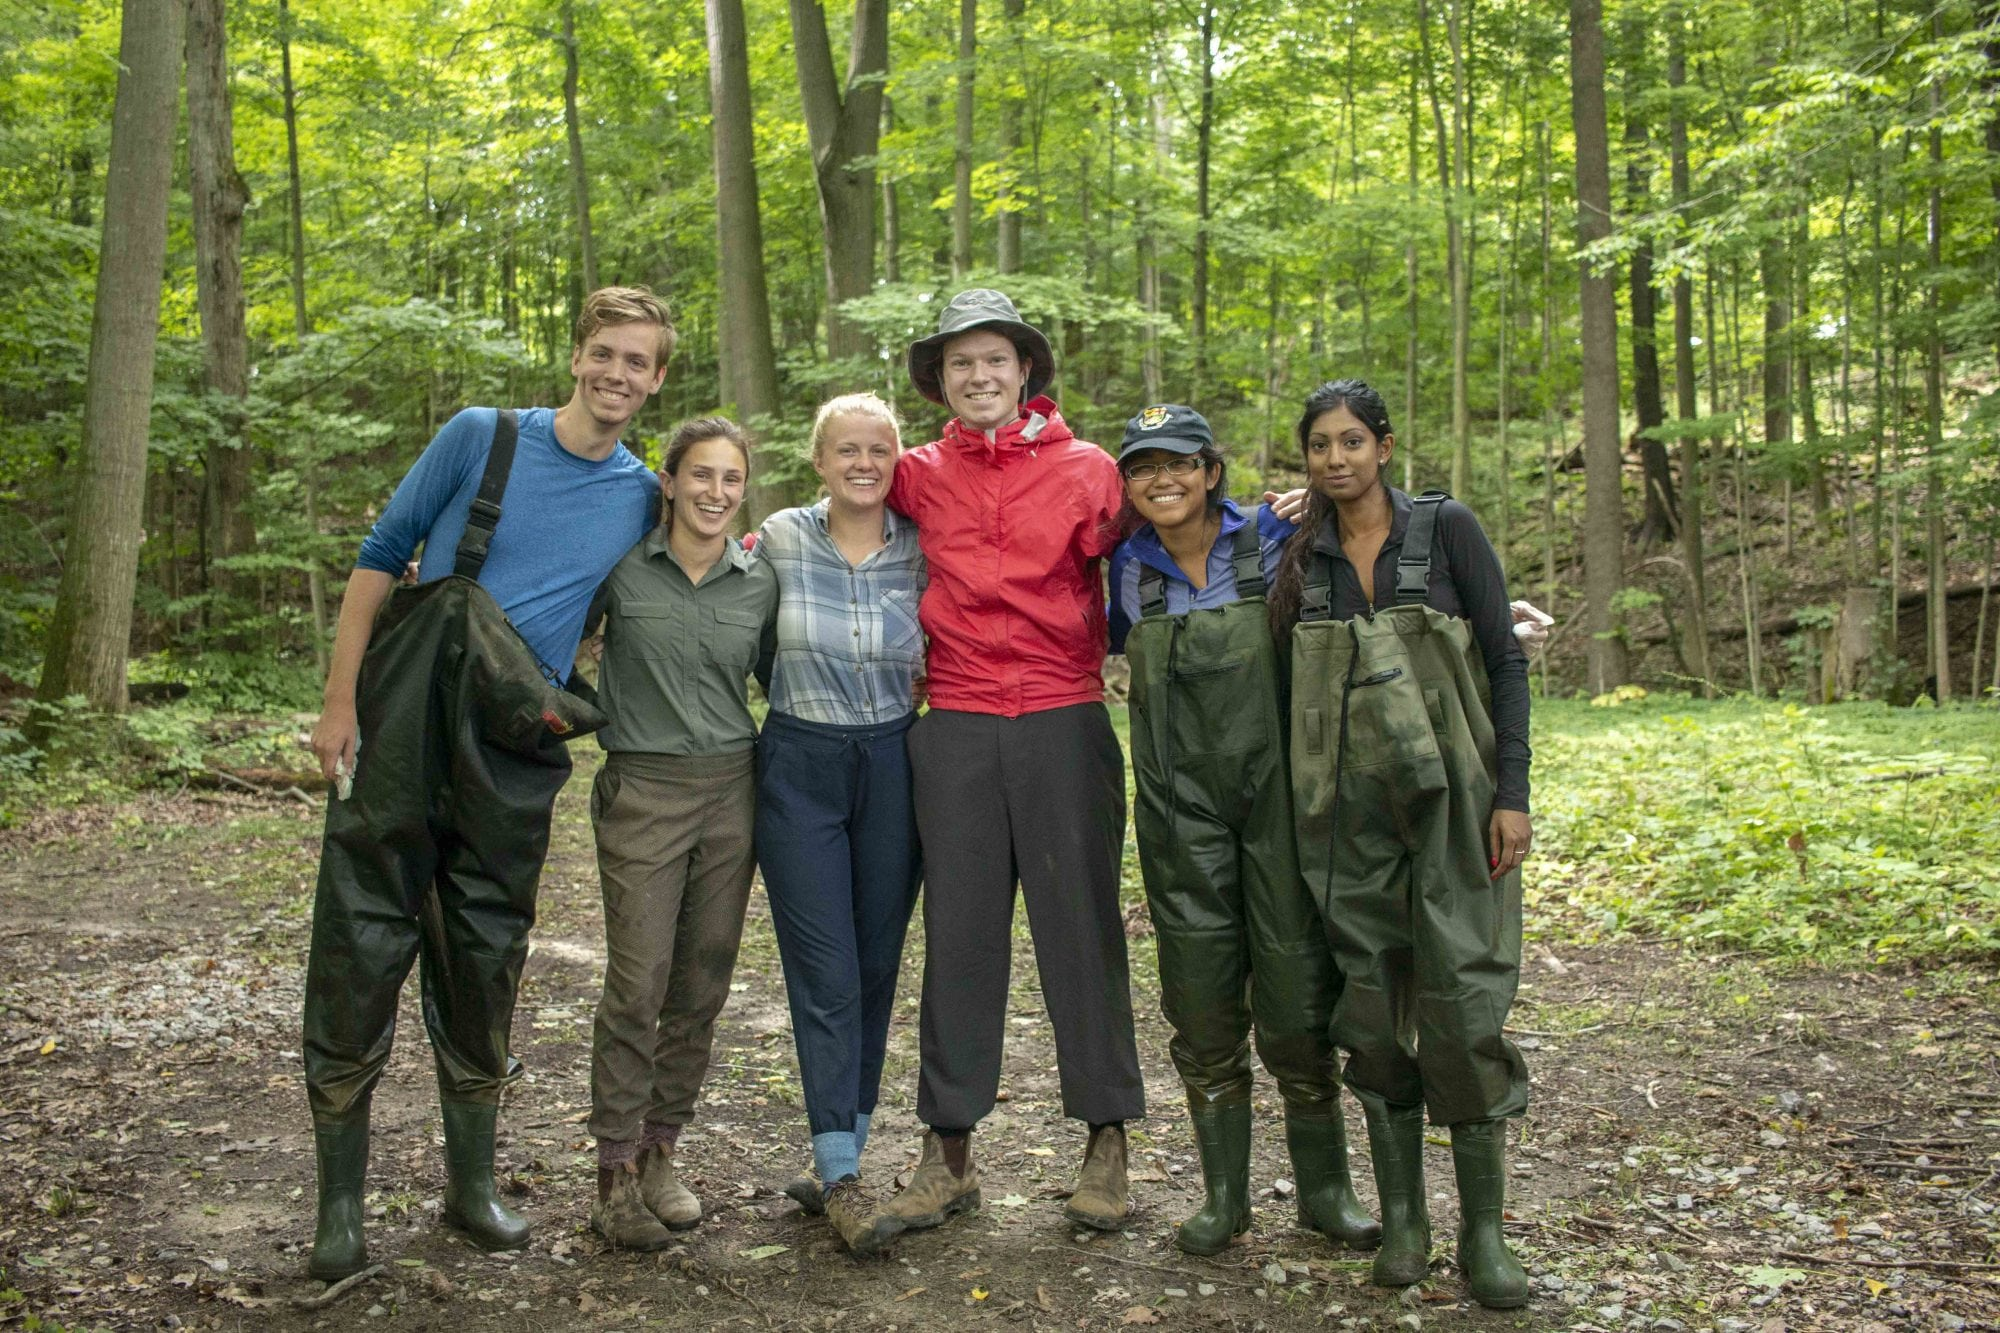 This team, comprised of PhD, MSc and summer students, is one of several that spend the summer collecting samples for ecosystem services research.